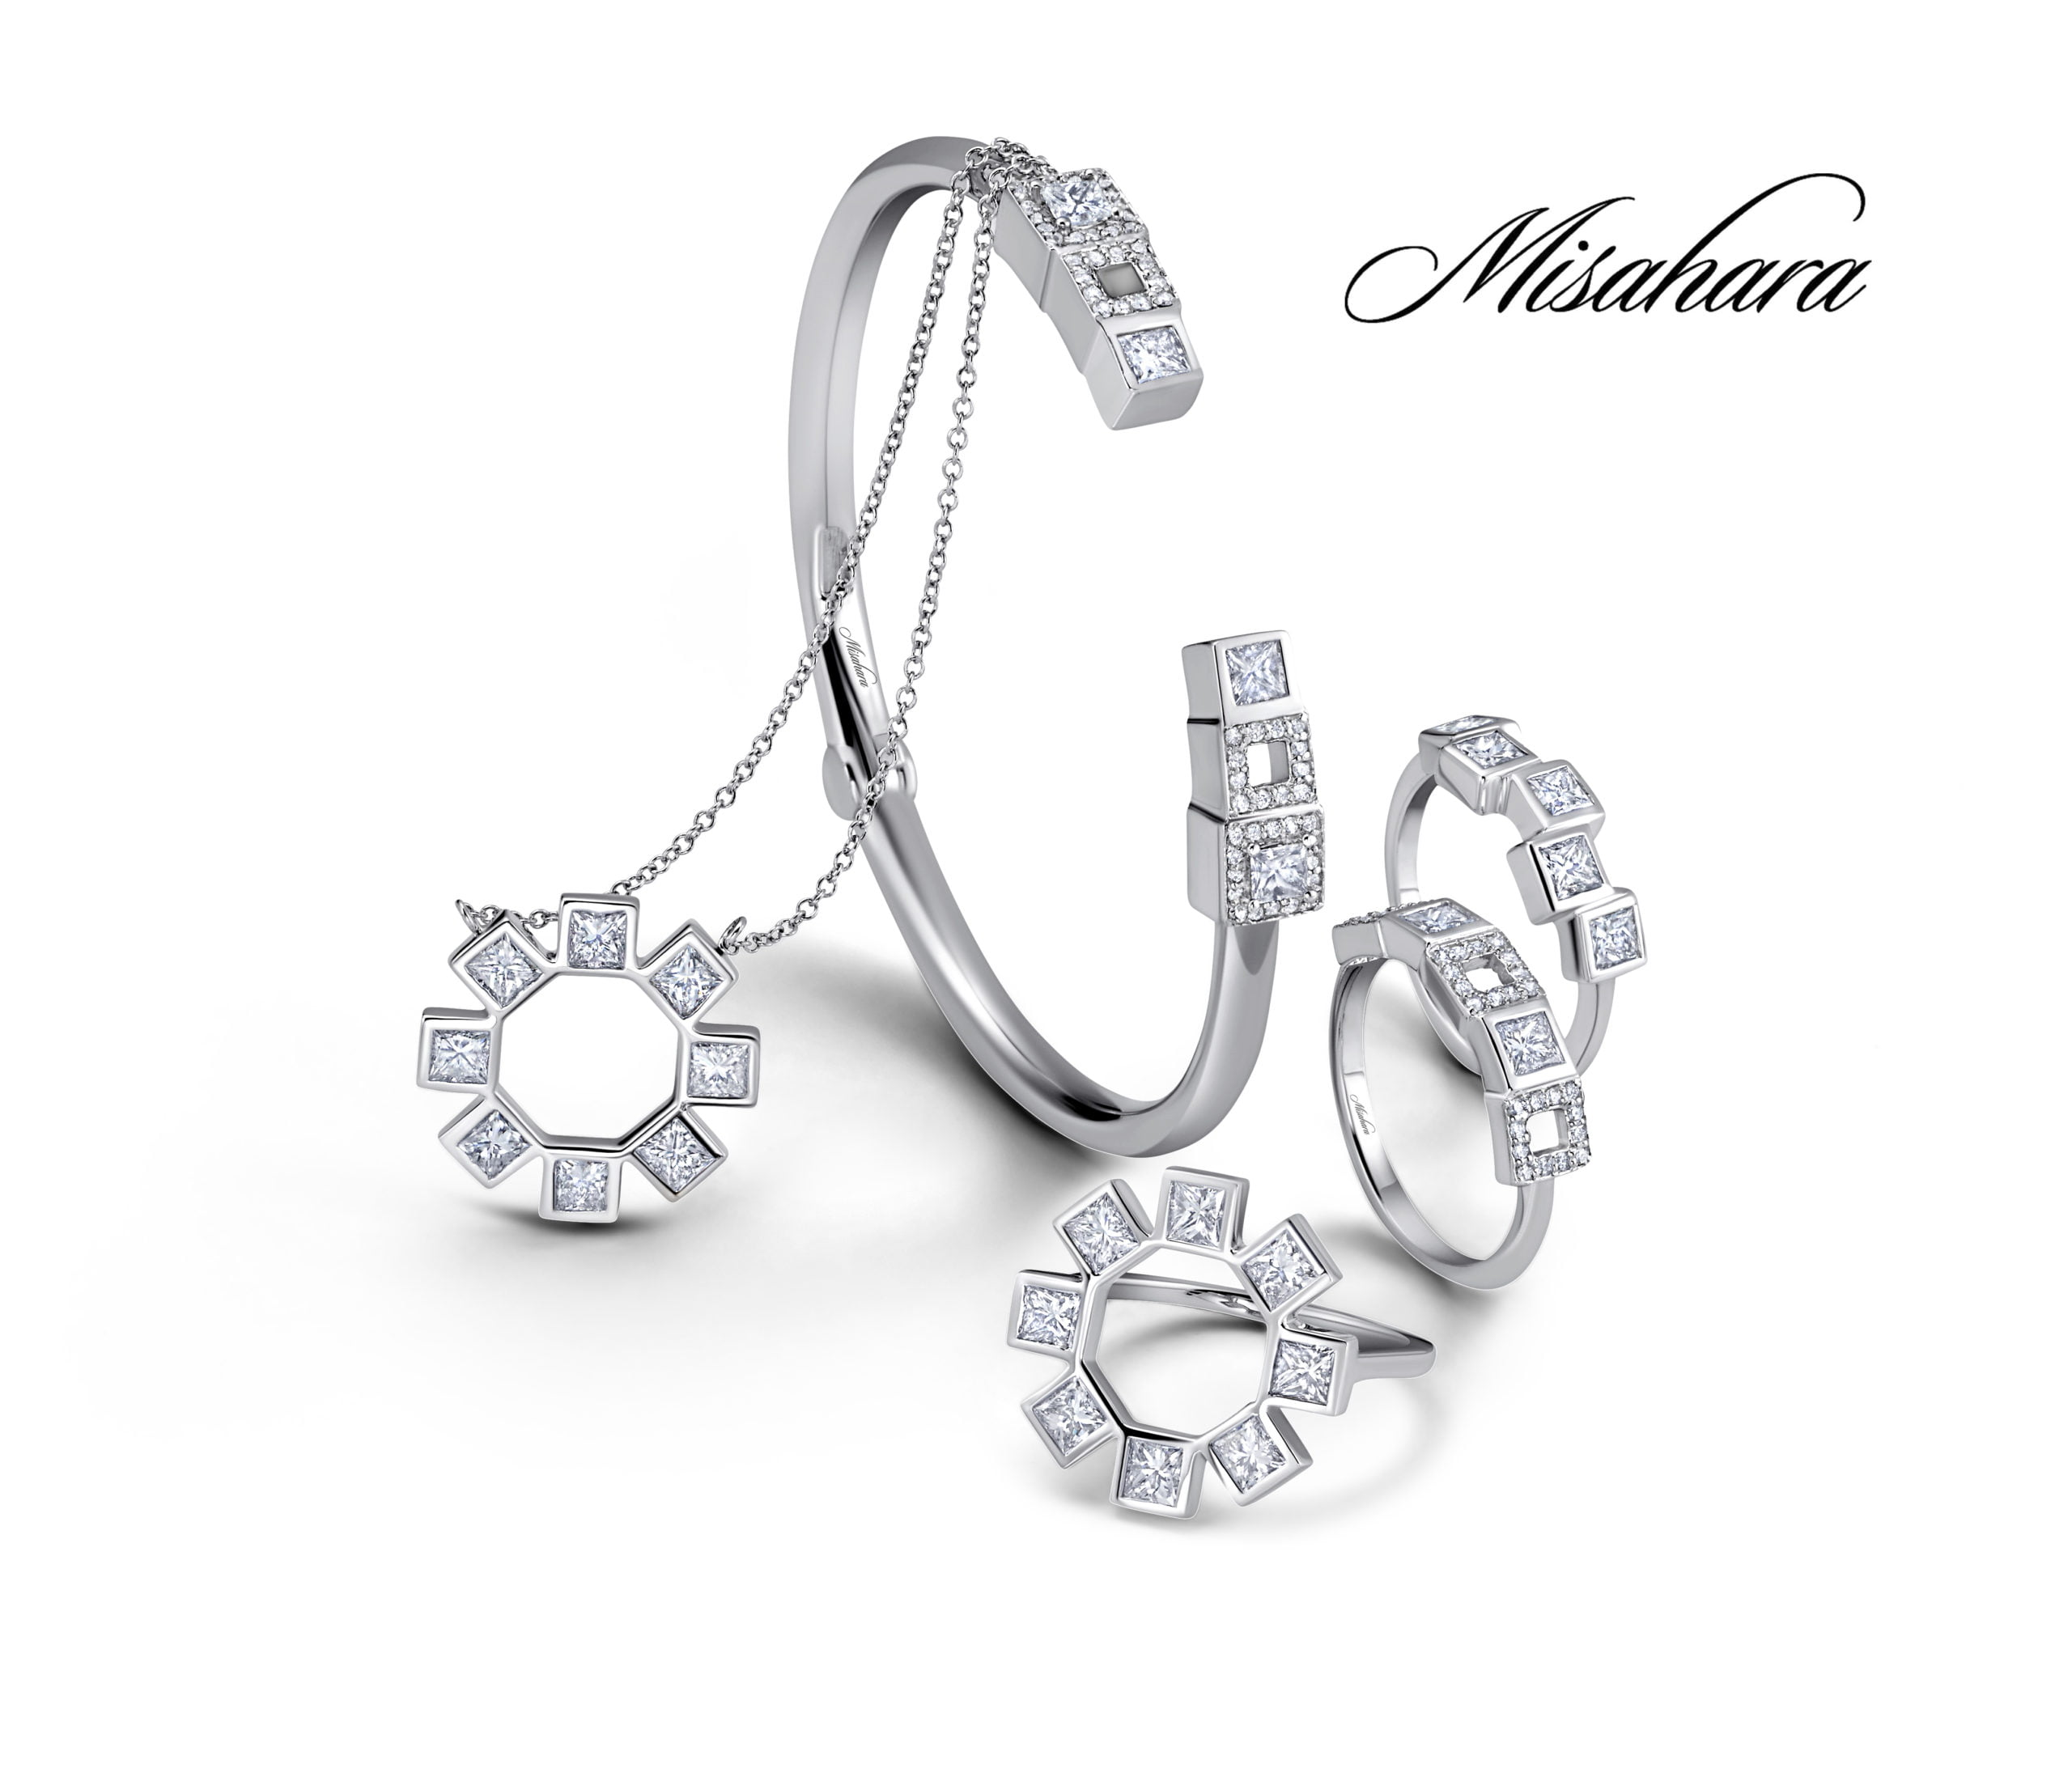 Misahara Jewelry Launches Mosaic Ice Re-Imagined Collection